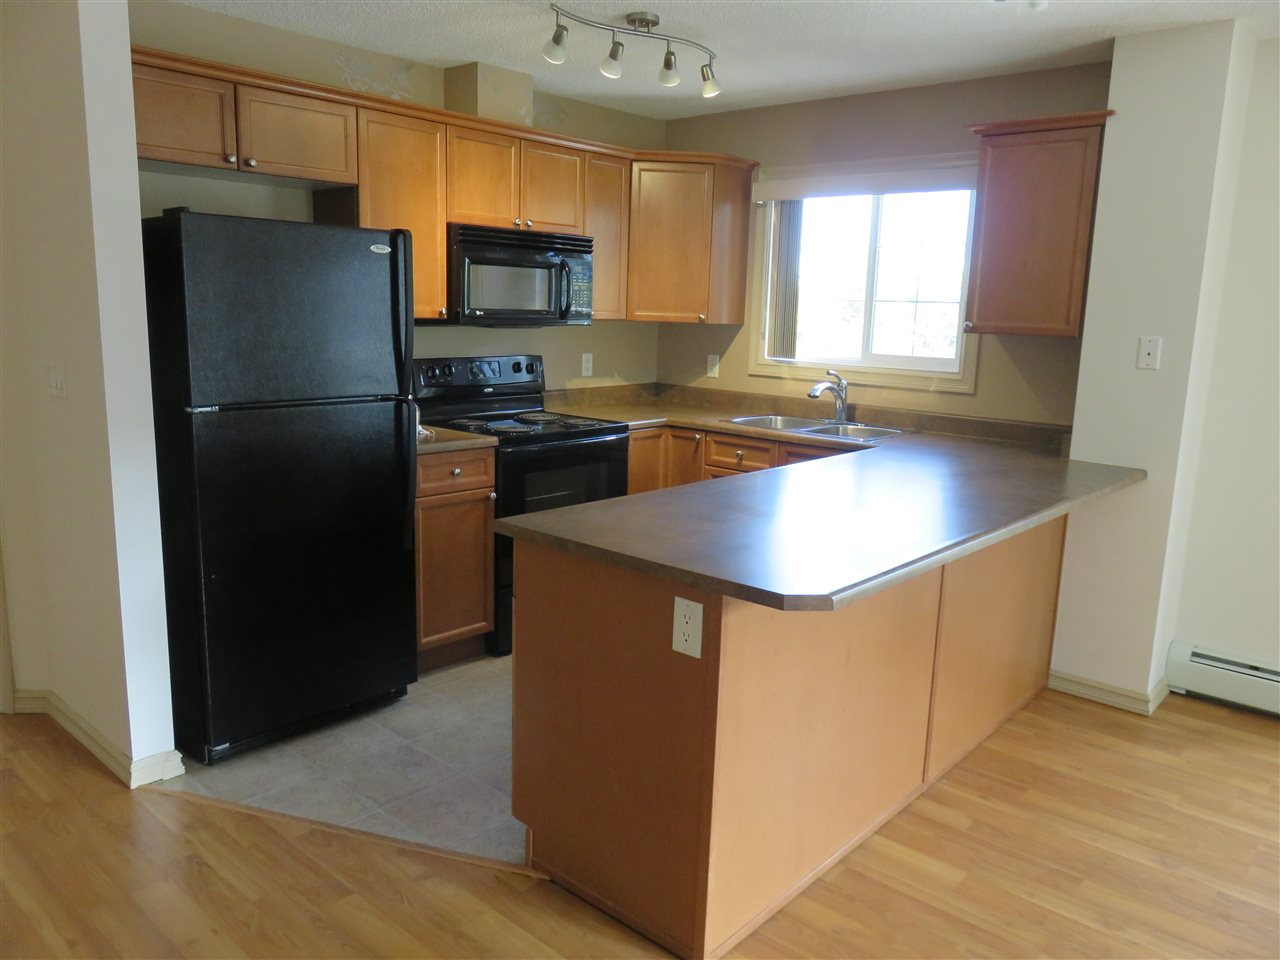 If you are looking for an extremely well maintained corner unit condo with HEATED underground parking, as well as storage locker, then this might be the one for you! The vast majority of this condo has recently been painted and the washer, dryer and dishwasher have all been recently replaced (2017). As soon as you walk in, you'll notice the kitchen to your left which opens up to the dining area and living room. Just off the living room there is the wrap around deck, with gas line, which is perfect for entertaining in the warmer months. Both the master bedroom, which features a walk through closet and 3 piece ensuite, and the second bedroom are both generous in size. Location wise, it doesn't get much better, the Whitemud and Anthony Henday are just minutes away. With transit, schools, shopping and restaurants all within close proximity this is a great condo for any first time buyer or someone looking to downsize